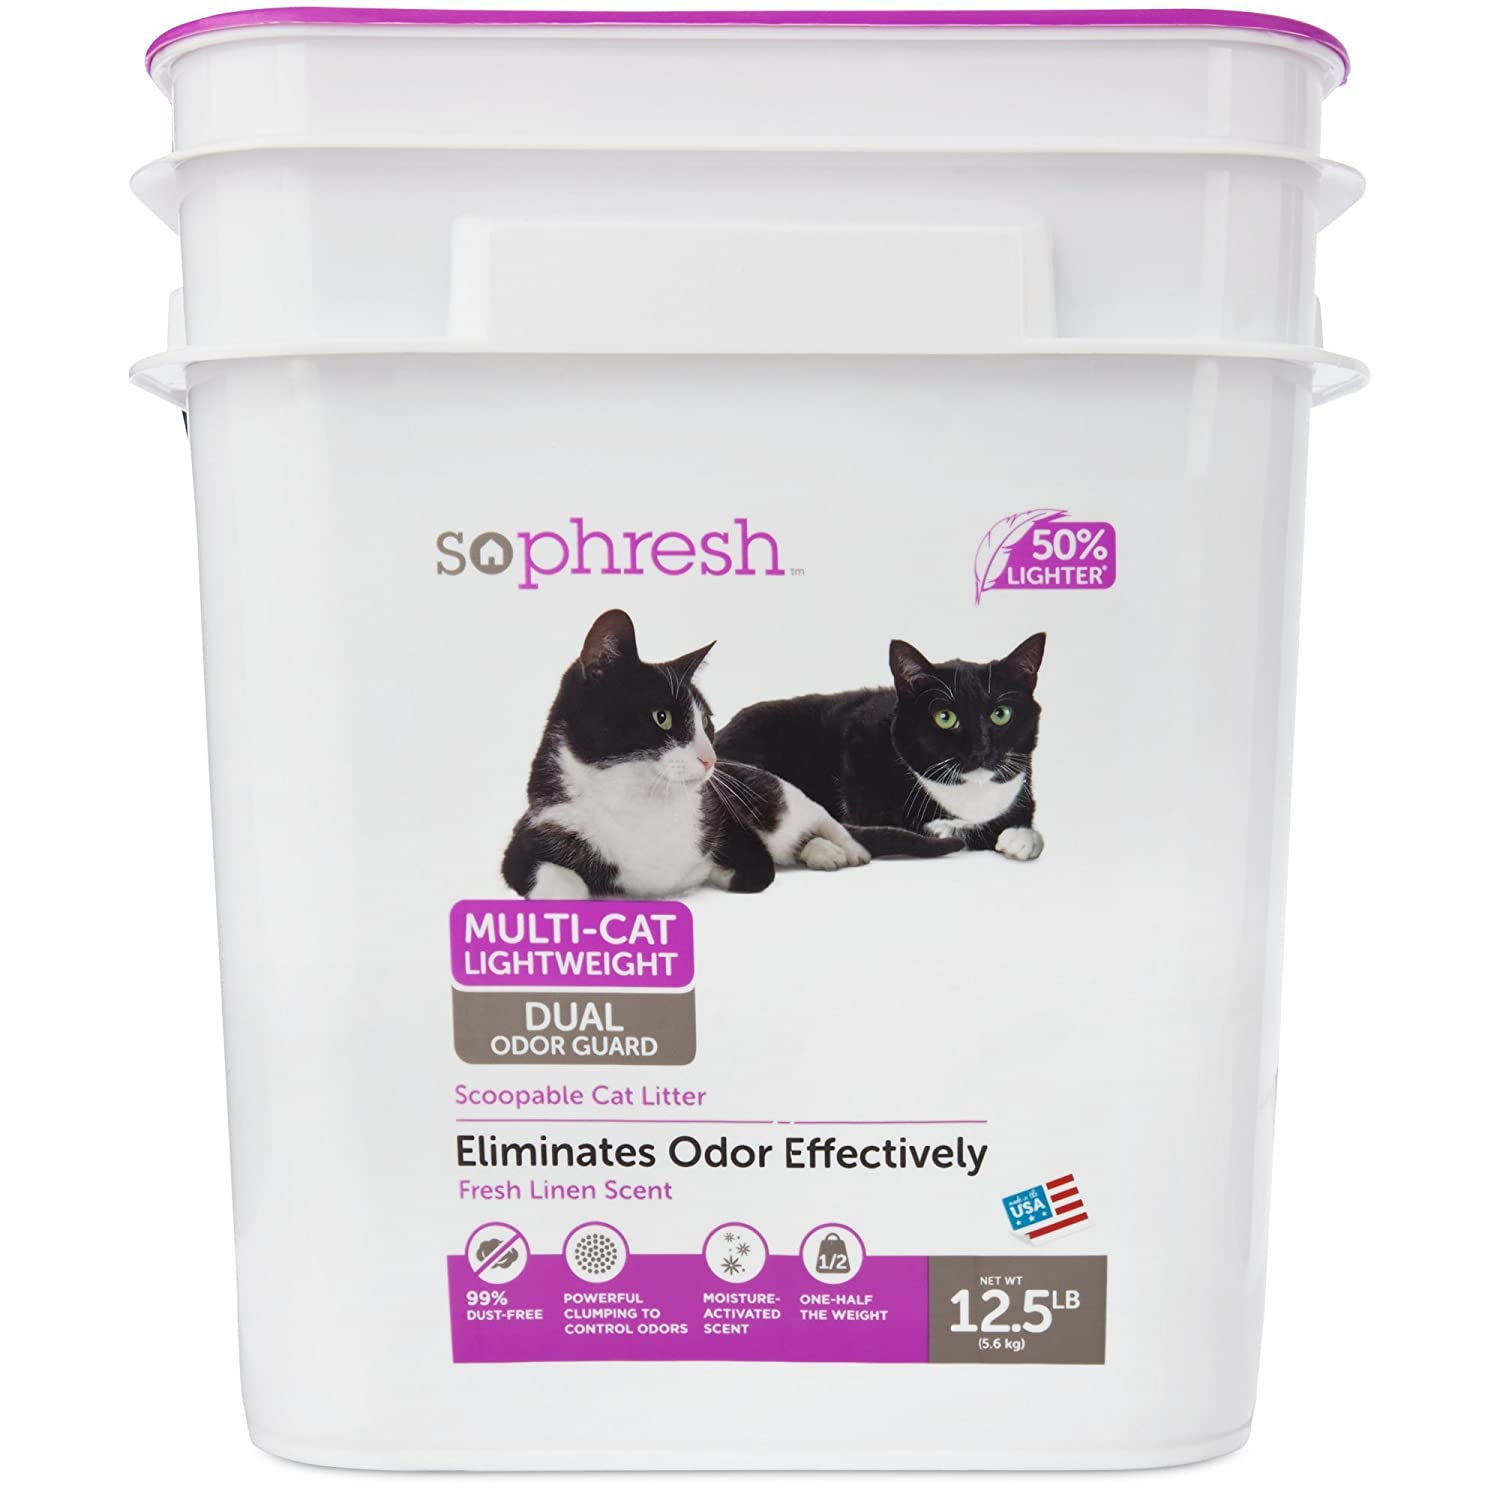 So Phresh Multi Cat Lightweight Dual Odor Guard Litter